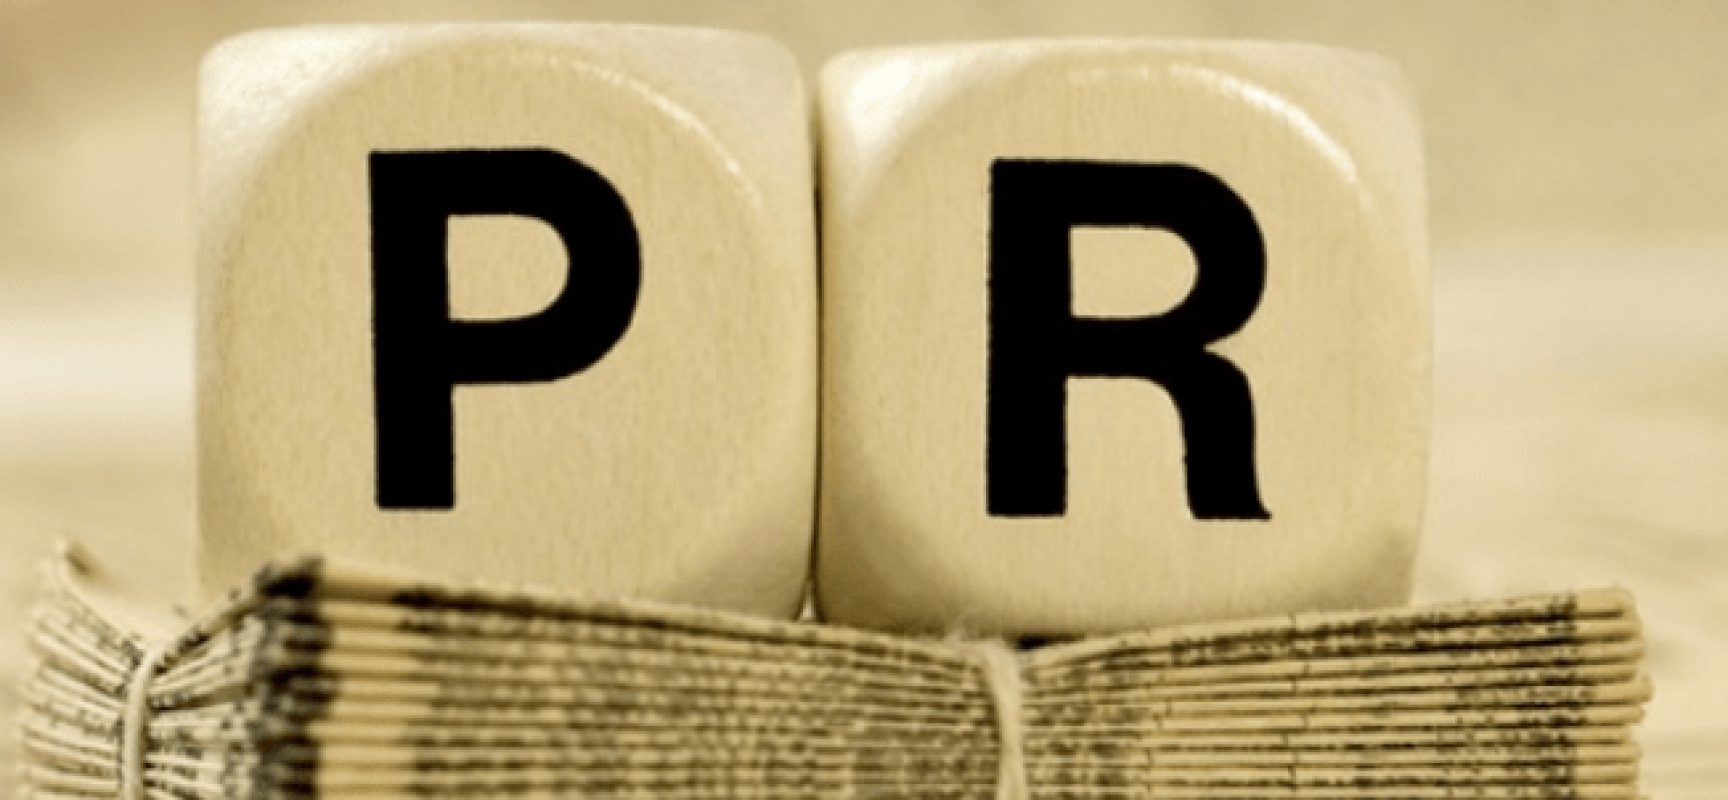 Have You Noticed the Growth in PR Firms?